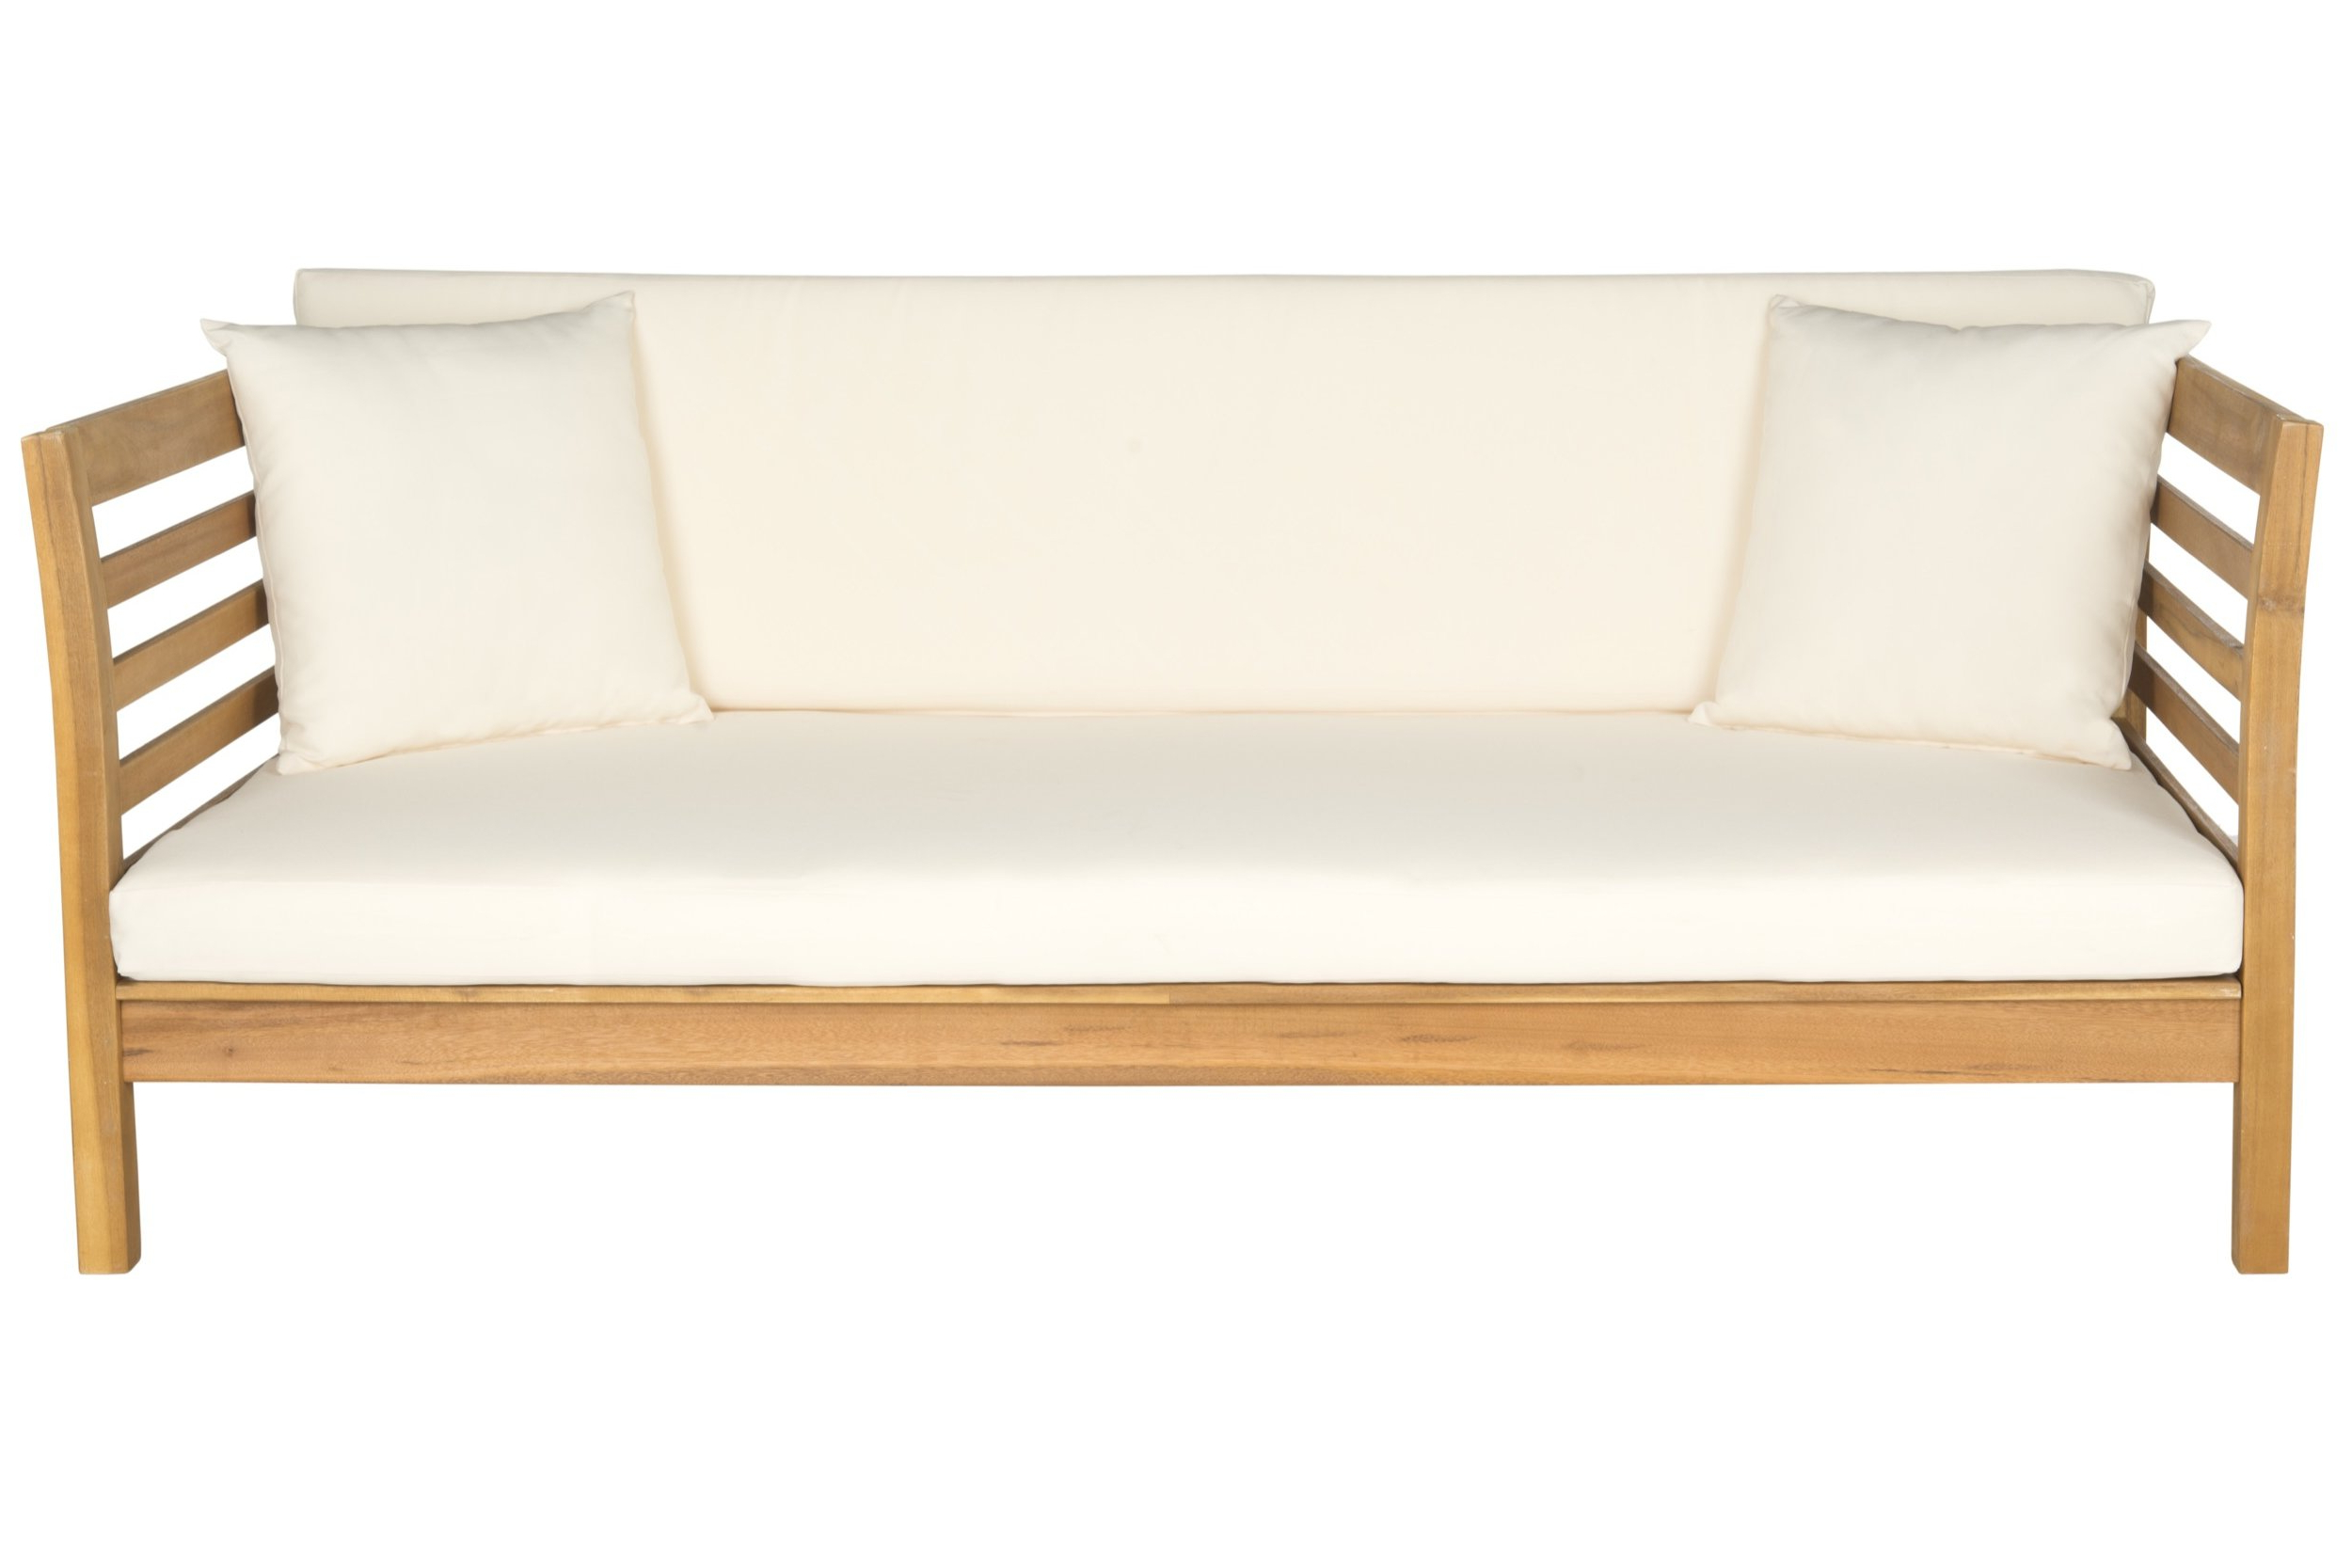 Bodine Patio Daybed With Cushions In Well Known Roush Teak Patio Daybeds With Cushions (View 3 of 20)